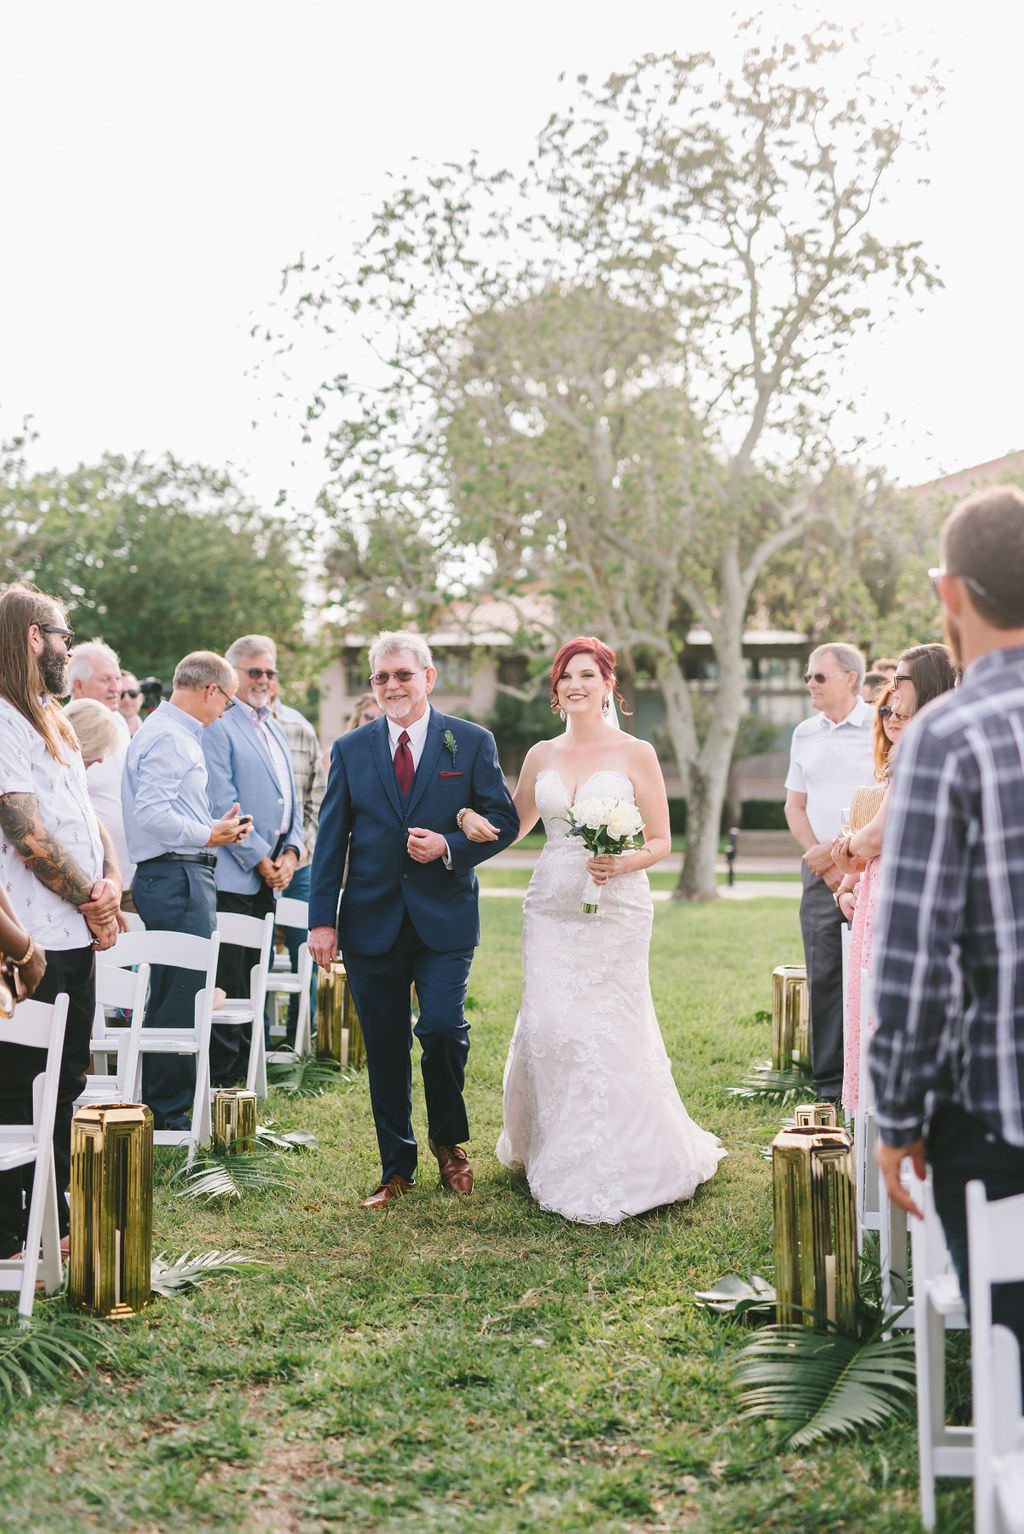 Tampa Bay Bride and Father Walking Down Outdoor Wedding Ceremony Aisle Processional   Wedding Photographer Kera Photography